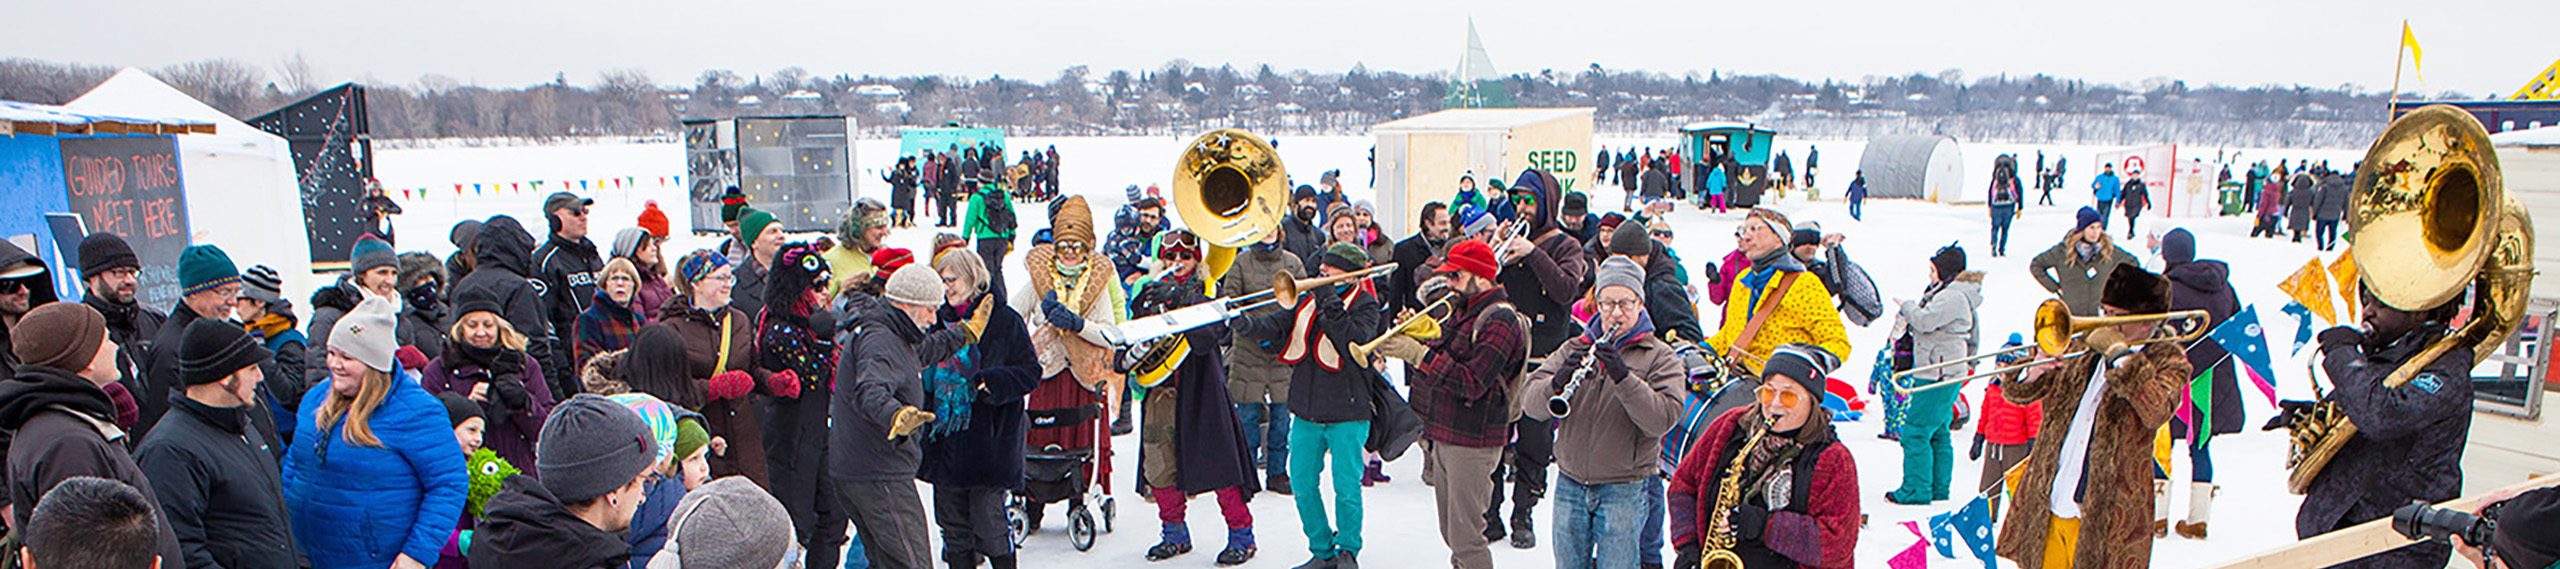 a large crowd in colorful winter-wear gathers around musicians on the frozen lake, with shanties and people in the background